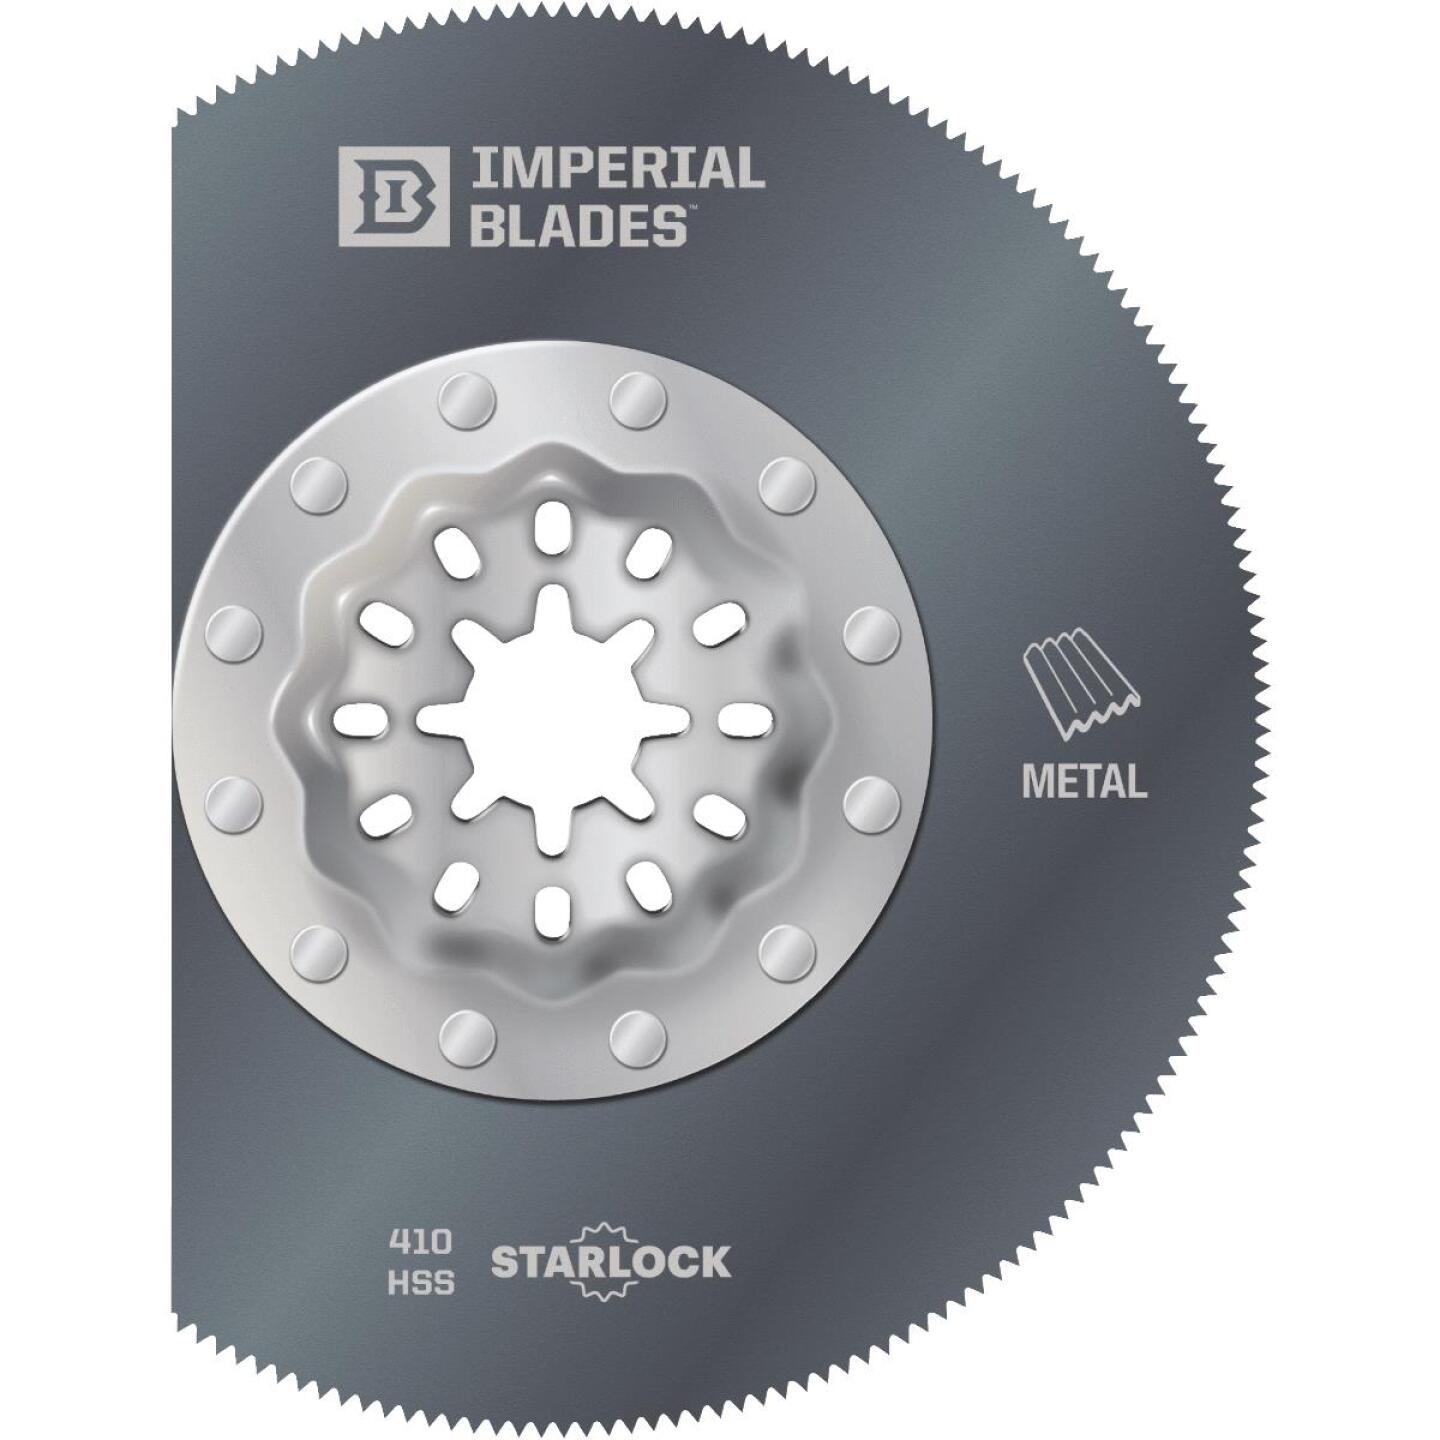 Imperial Blades Starlock 3-1/3 In. 20 TPI Segmented Wood/Nail Oscillating Blade Image 1